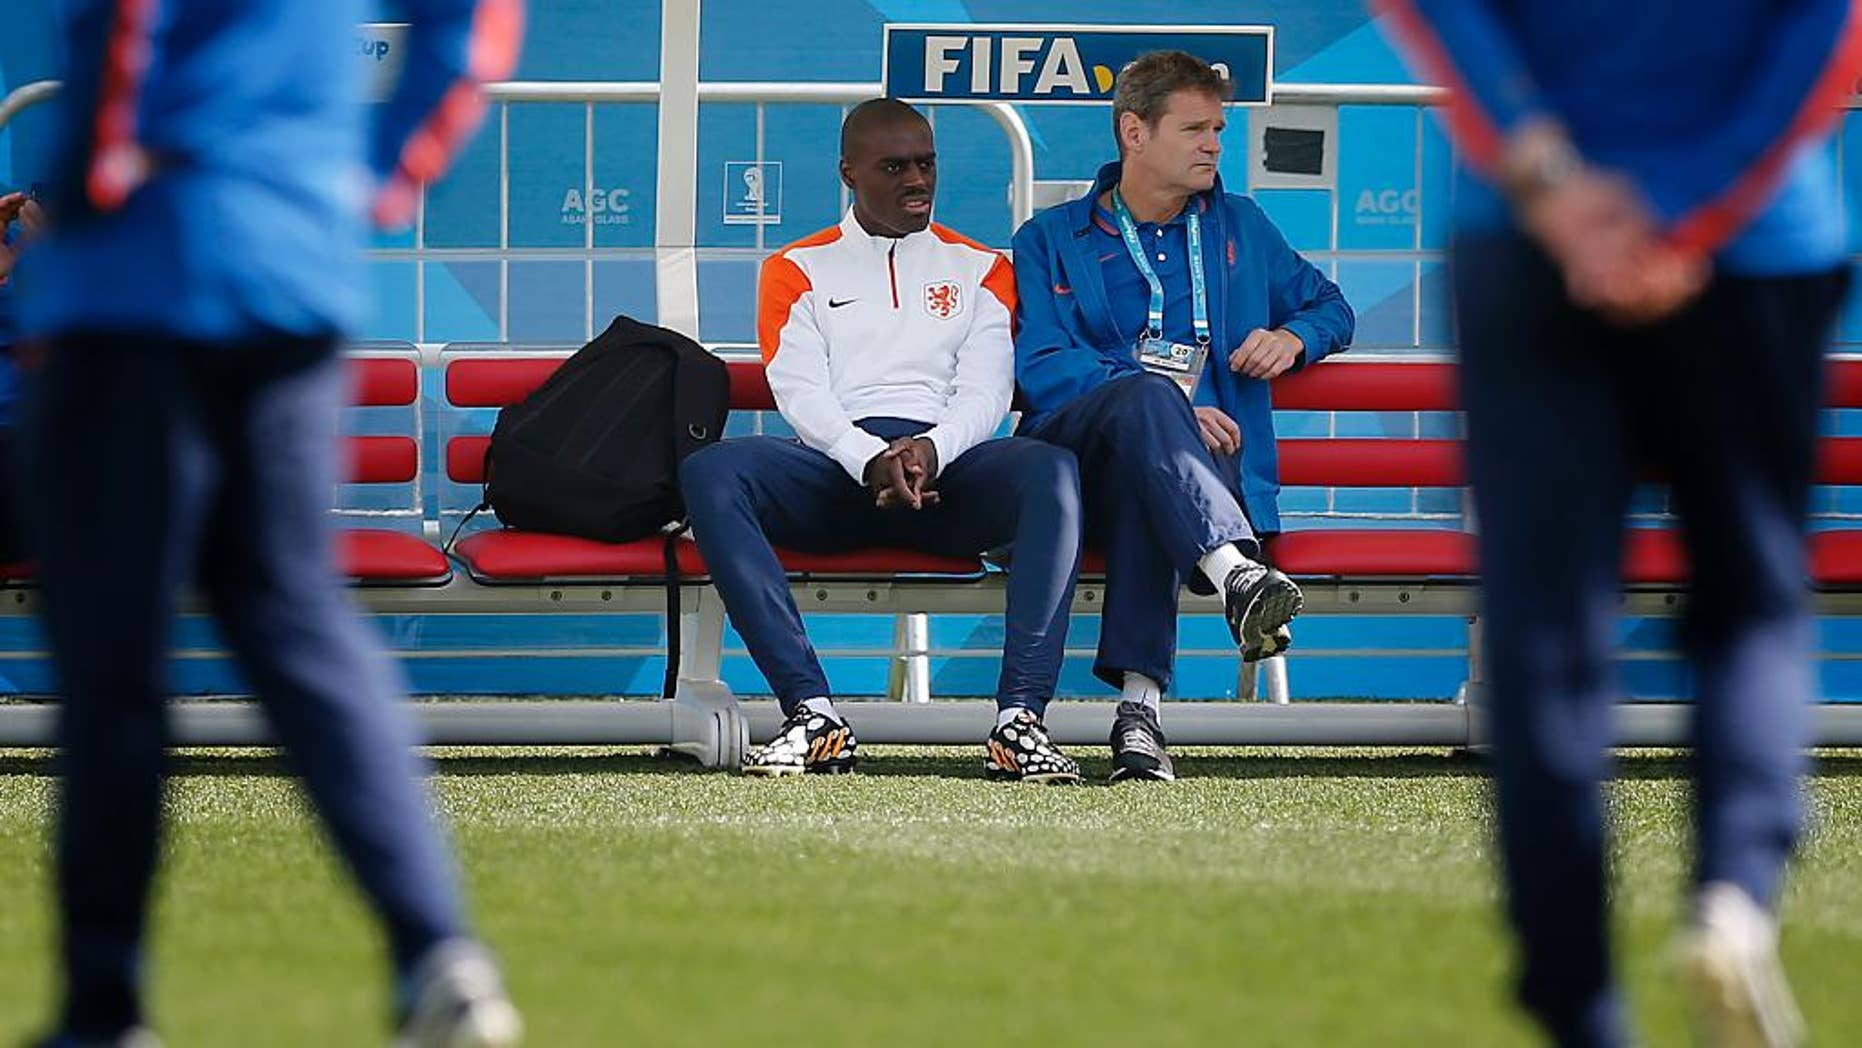 Bruno Martins Indi, left, of the Netherlands sits out of a training session at the Itaquerao Stadium in Sao Paulo, Brazil, Sunday, June 22, 2014.  The Netherlands will play Chile in a match that will decide the winner of Group B at the 2014 soccer World Cup. (AP Photo/Wong Maye-E)